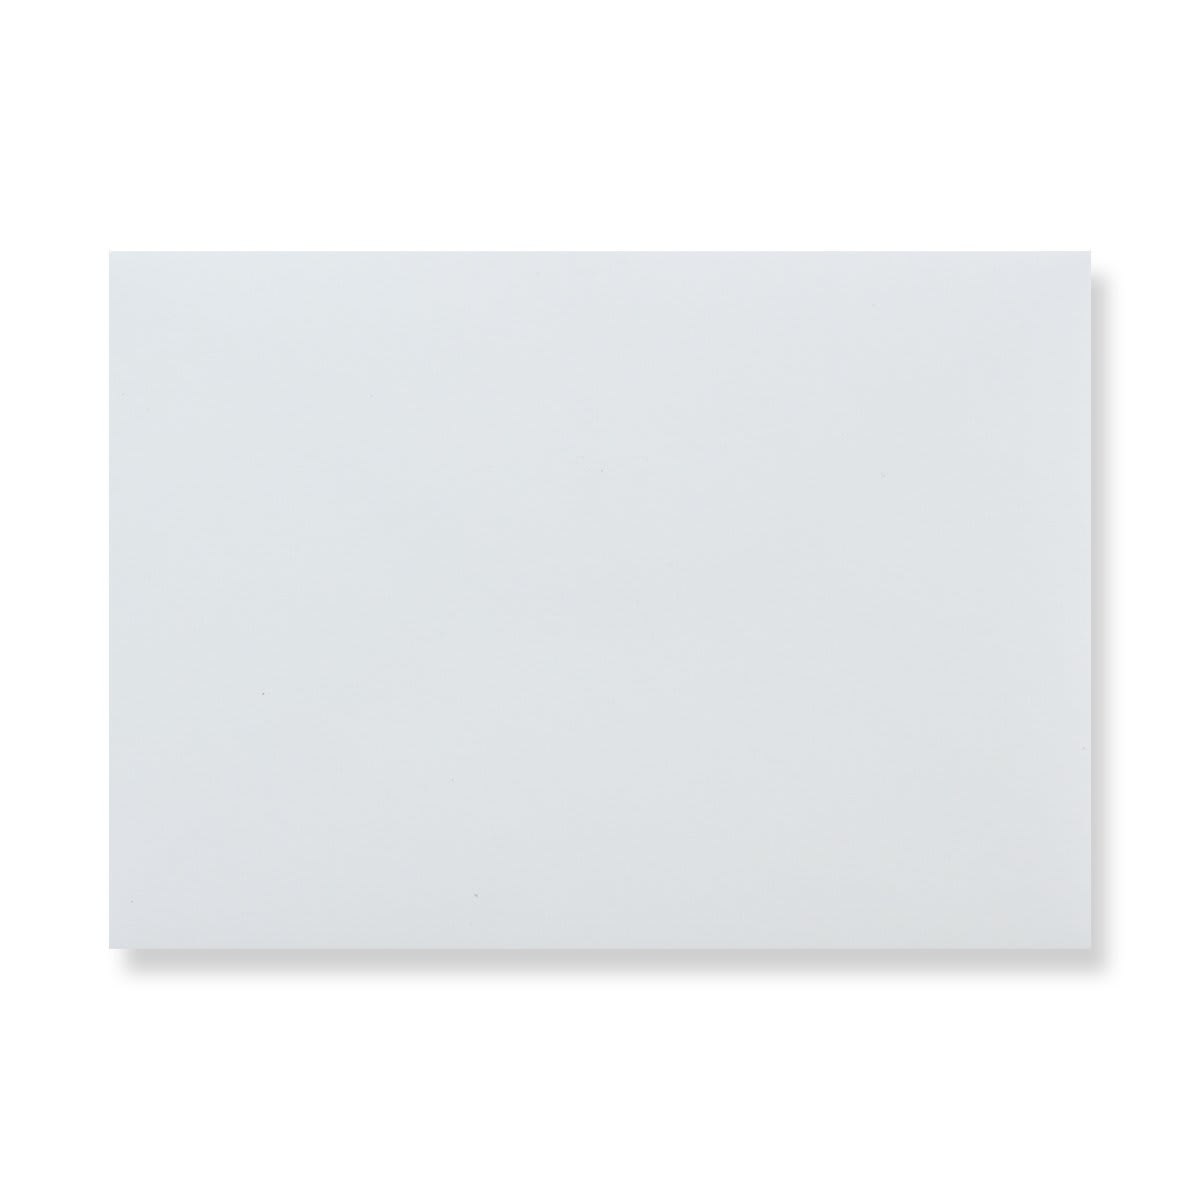 C6 RECYCLED WHITE ENVELOPES